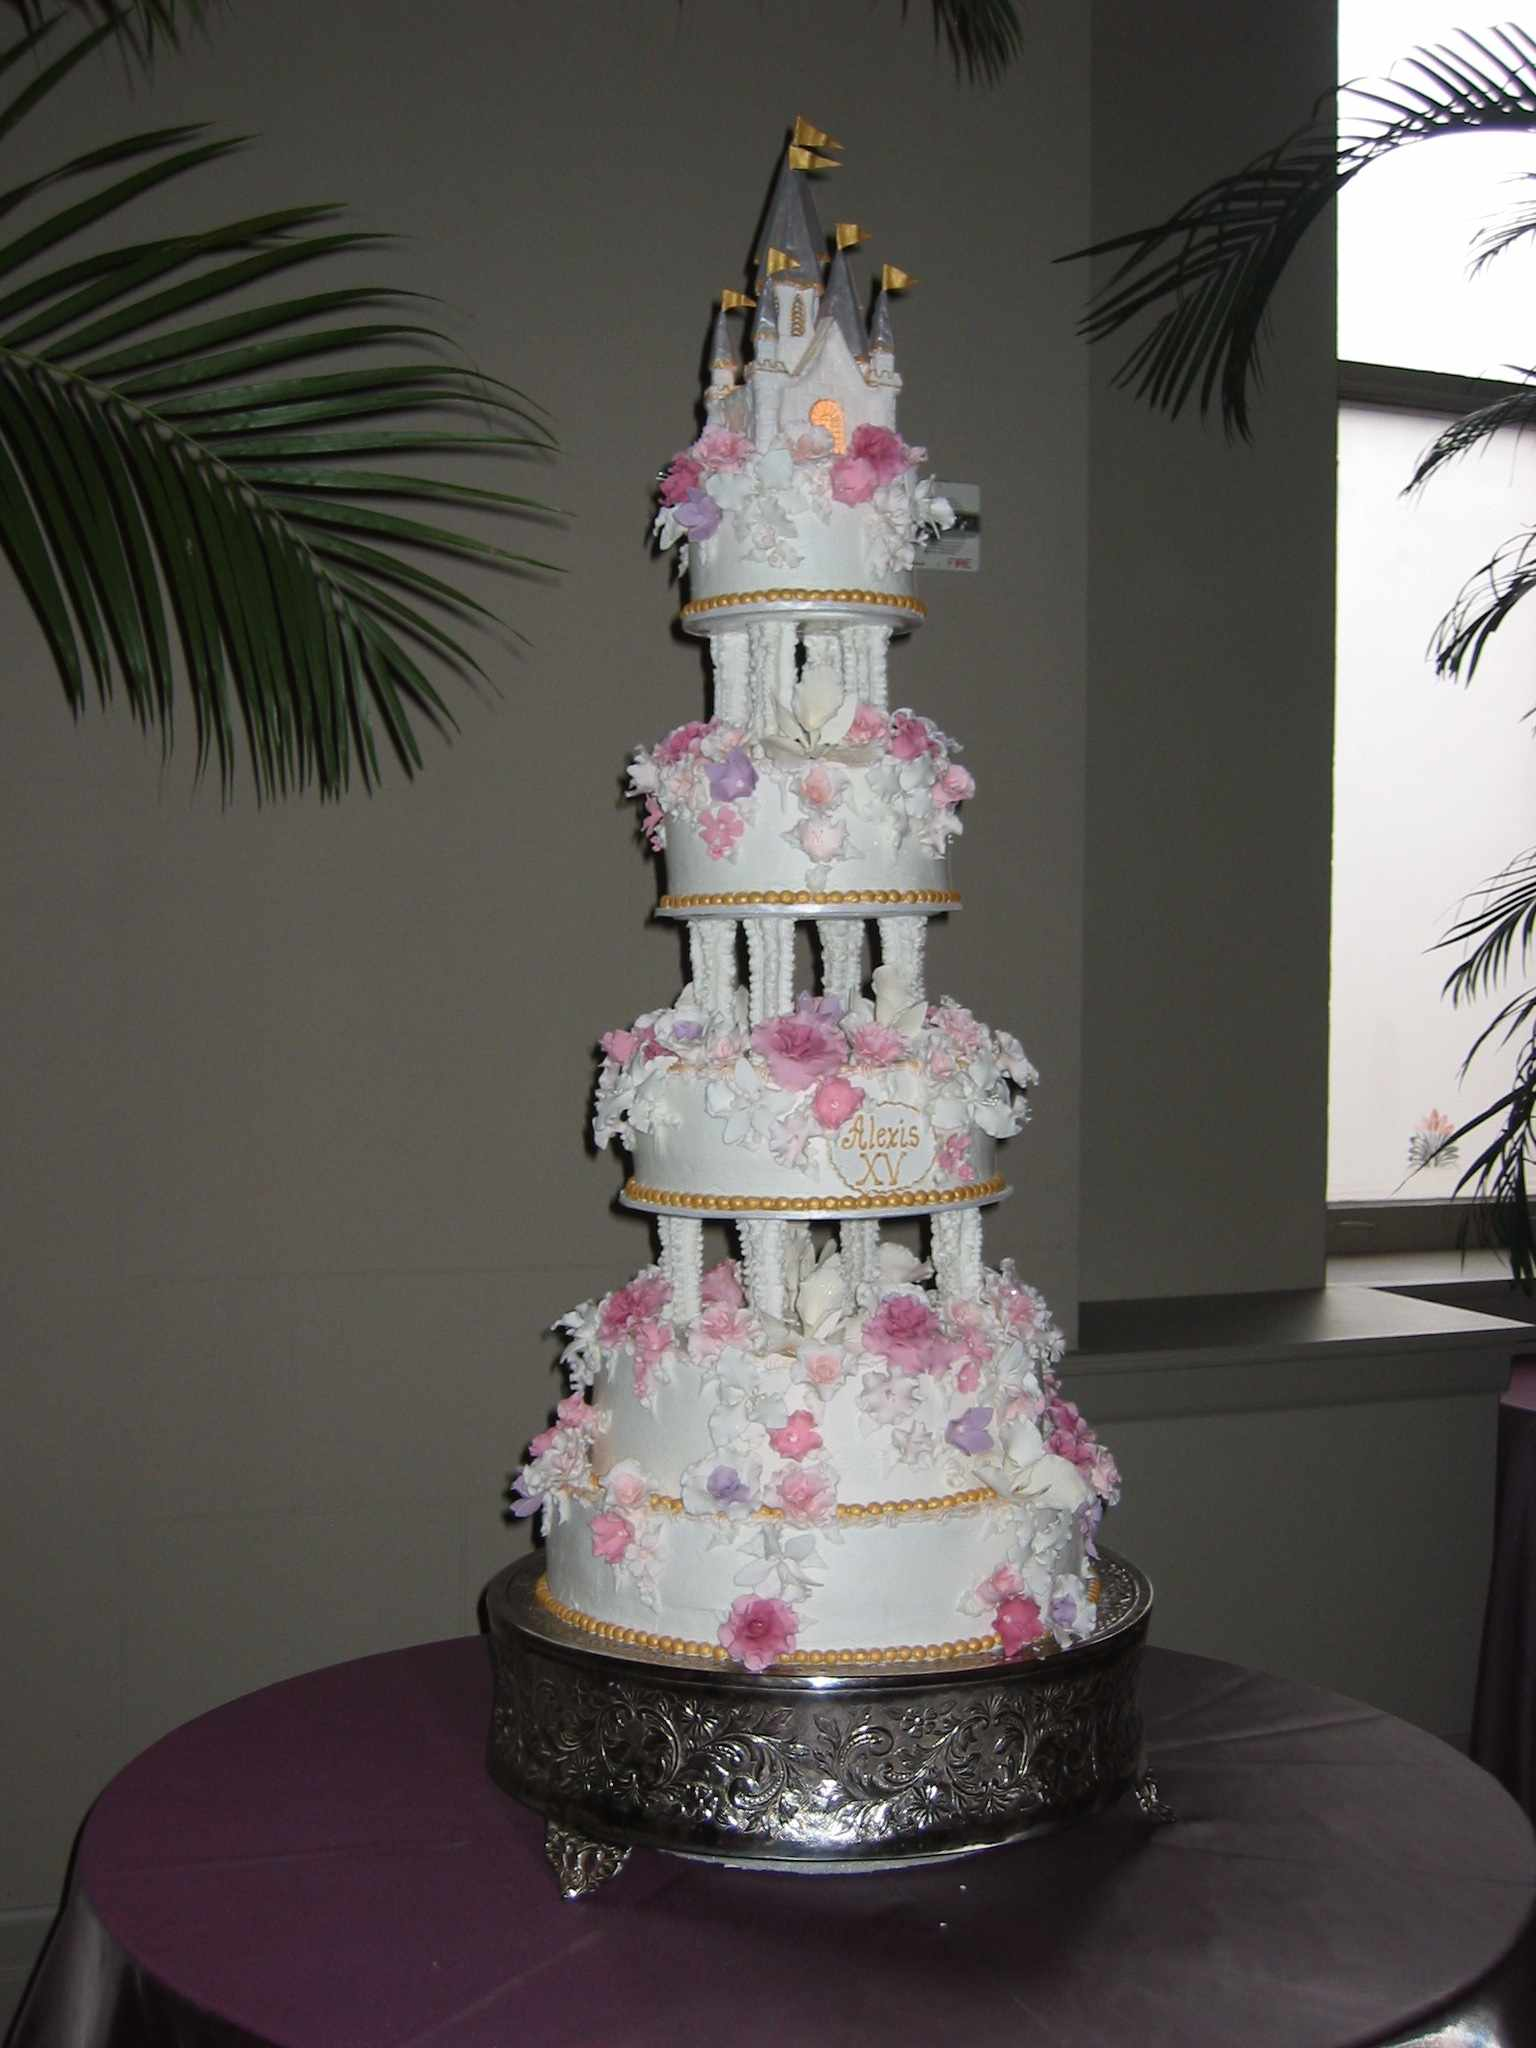 Who Made The Cake Wedding And Quinceanera Cakes In